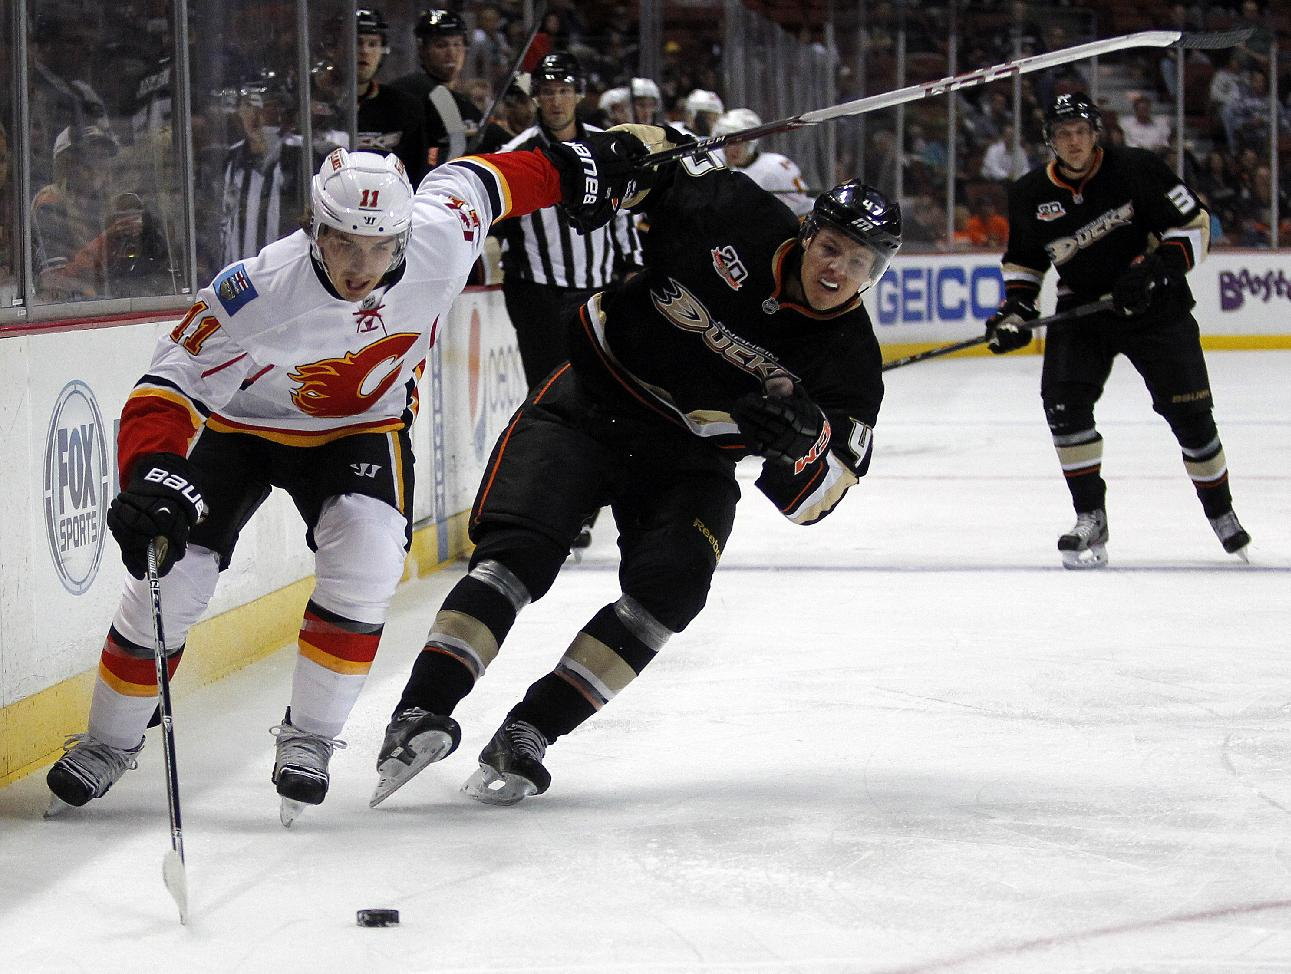 Calgary Flames center Mikael Backlund (11), of Sweden, races to the puck with Anaheim Ducks defenseman Hampus Lindholm (47), of Sweden, during the first period of an NHL hockey game, Wednesday, Oct. 16, 2013, in Anaheim, Calif